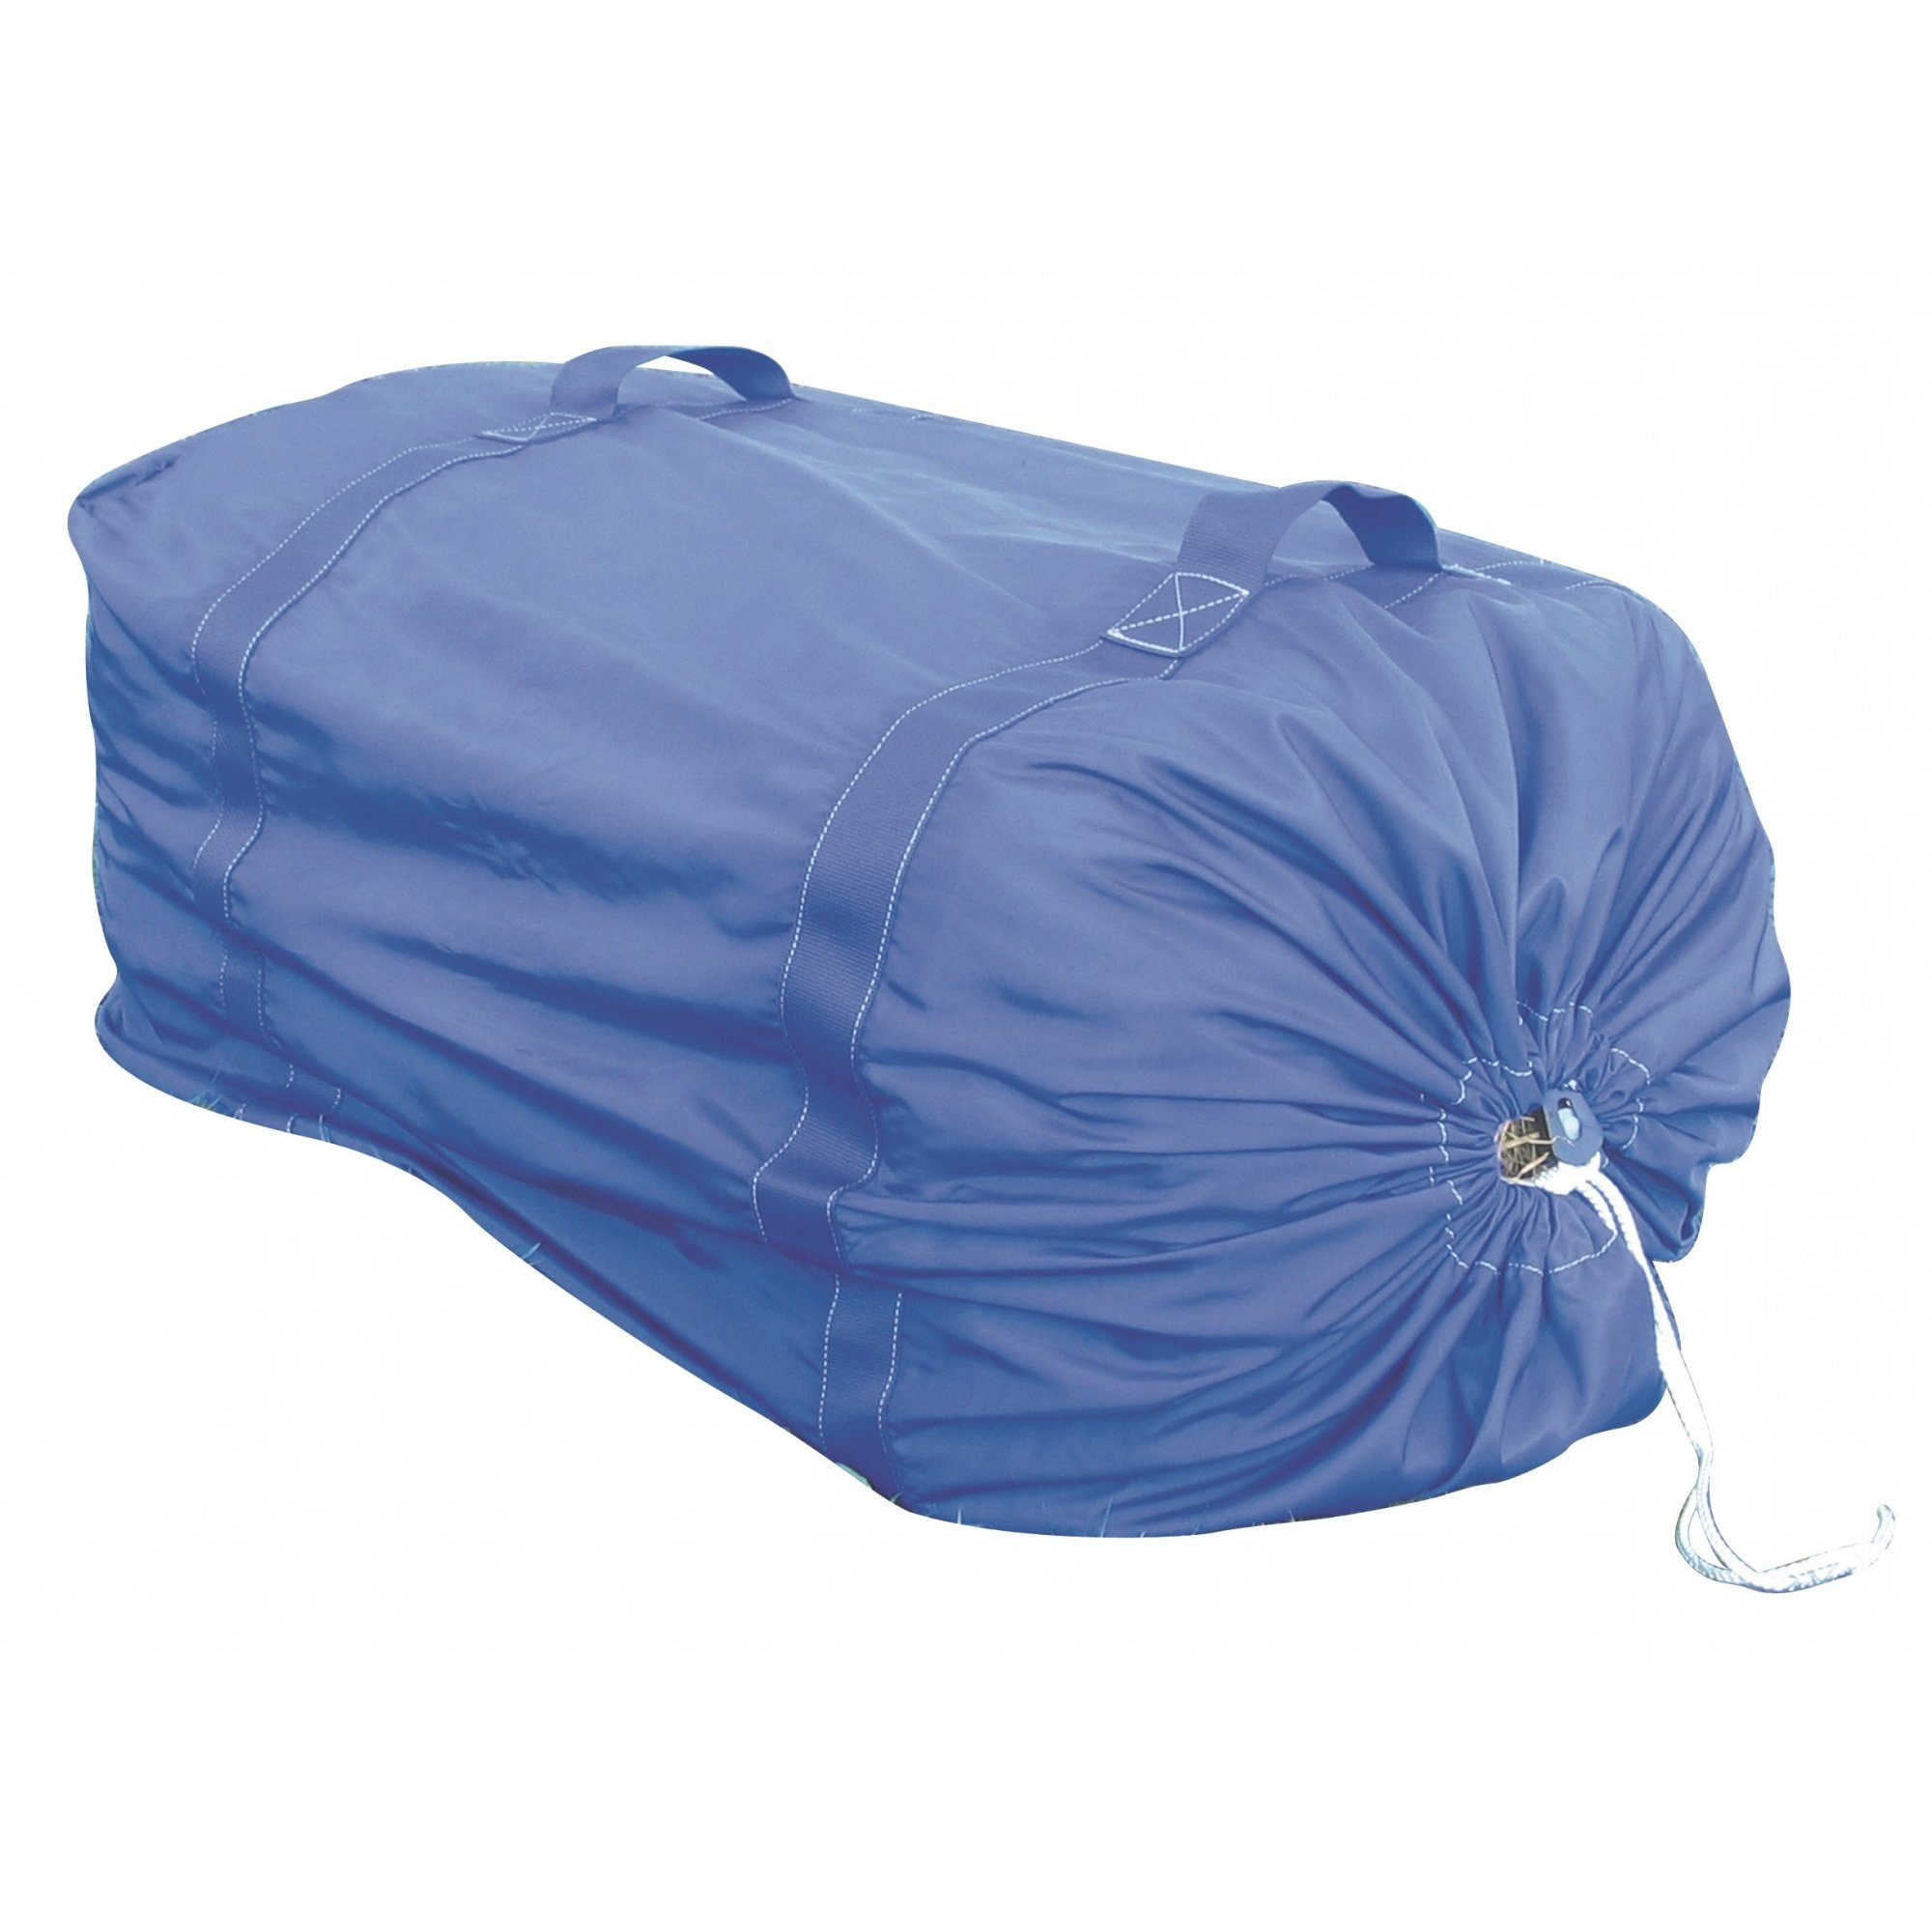 Moorland Rider Bale Carry Sack (46 x 23.6in) (Blue)